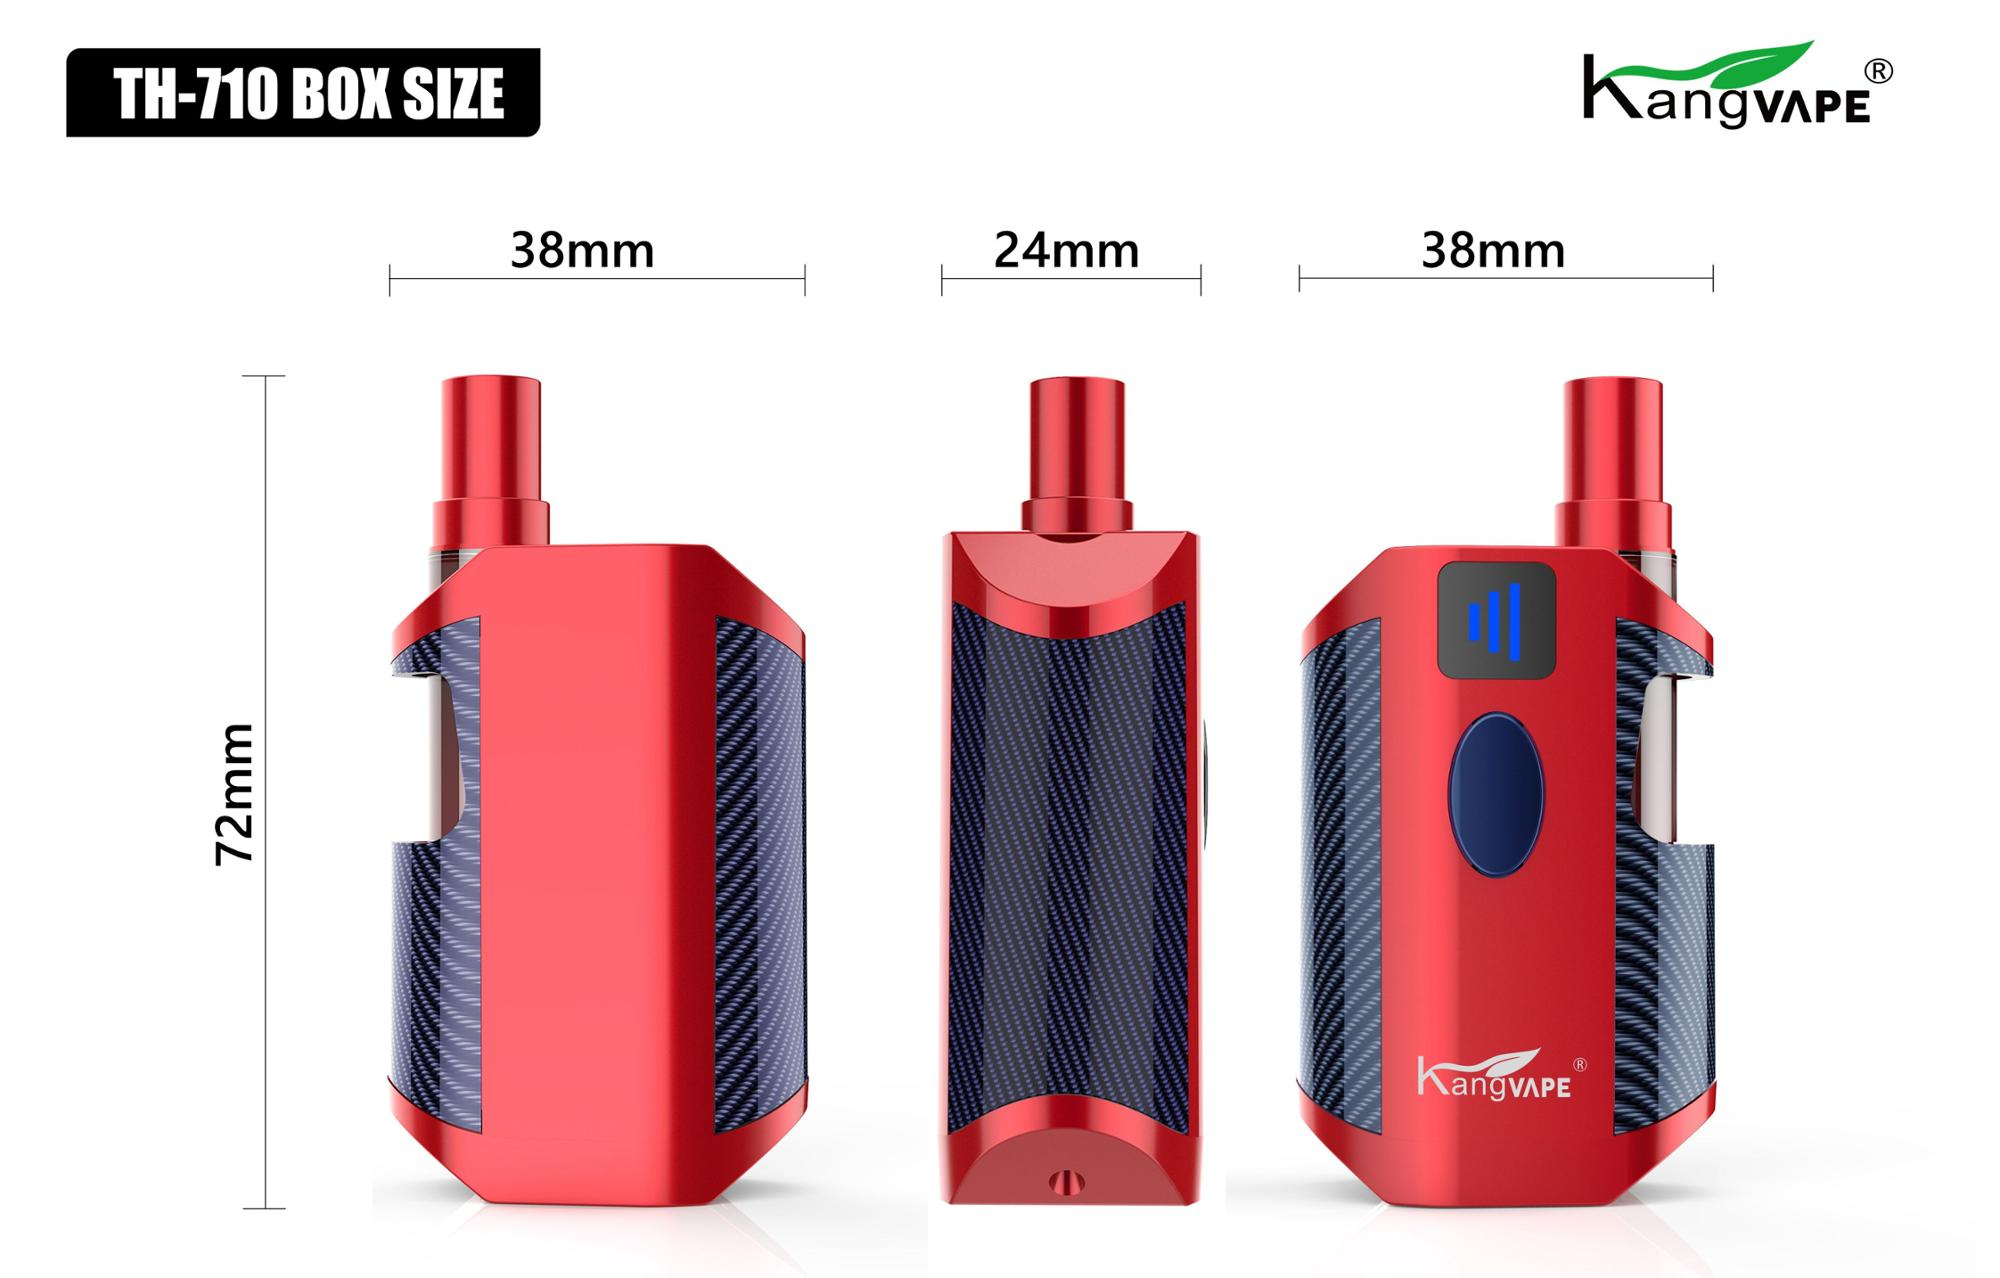 Kangvape variable voltage cbd oil battery 650mAh compatible with 510 cbd oil cartridge vape pen TH 710 BOX